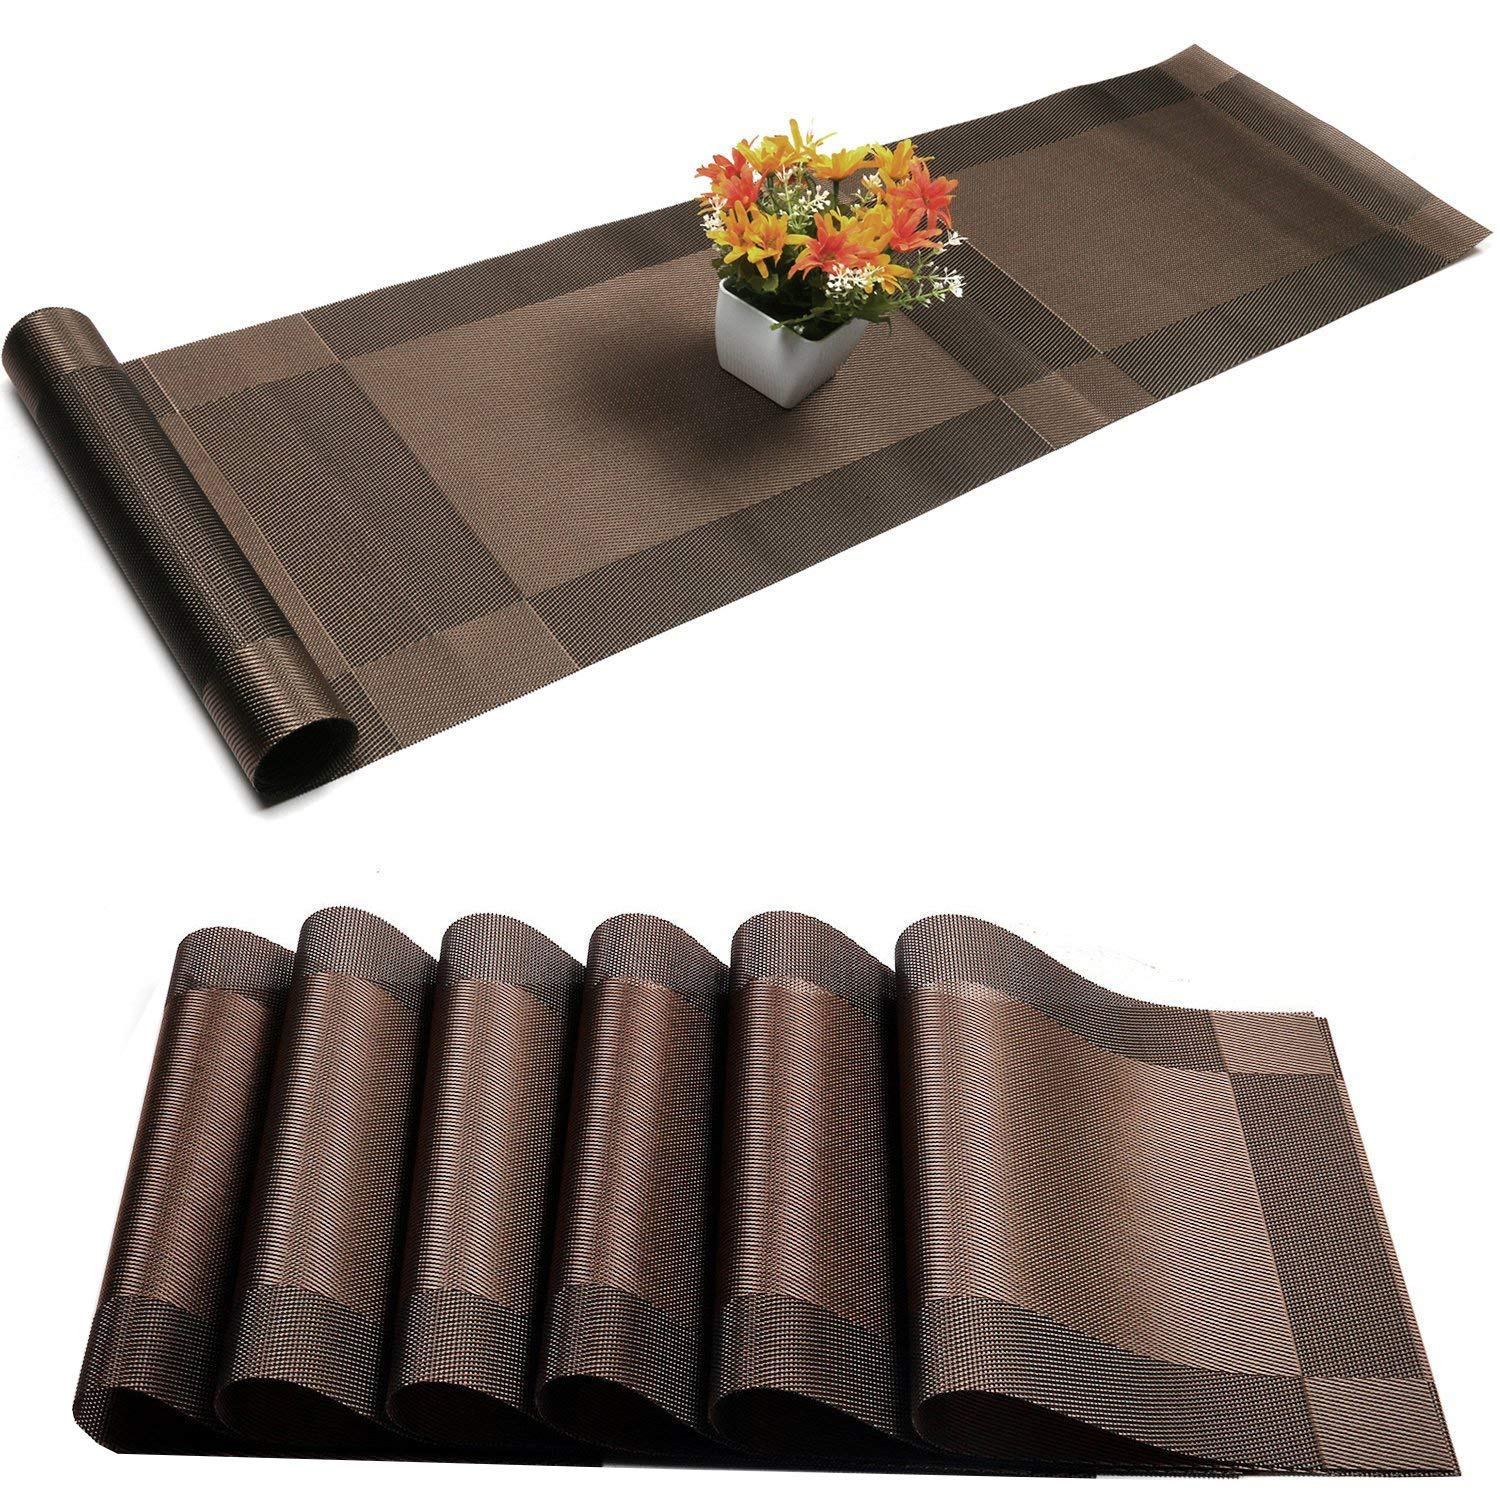 Placemats Set of 6 + 1 Table Runner, Stain Resistant Washable PVC Table Mats Non-Slip Washable Coffee Mats,Crossweave Woven Vinyl Heat Resistant Kitchen Tablemats for Dining Table (Coffee) by Misuhom